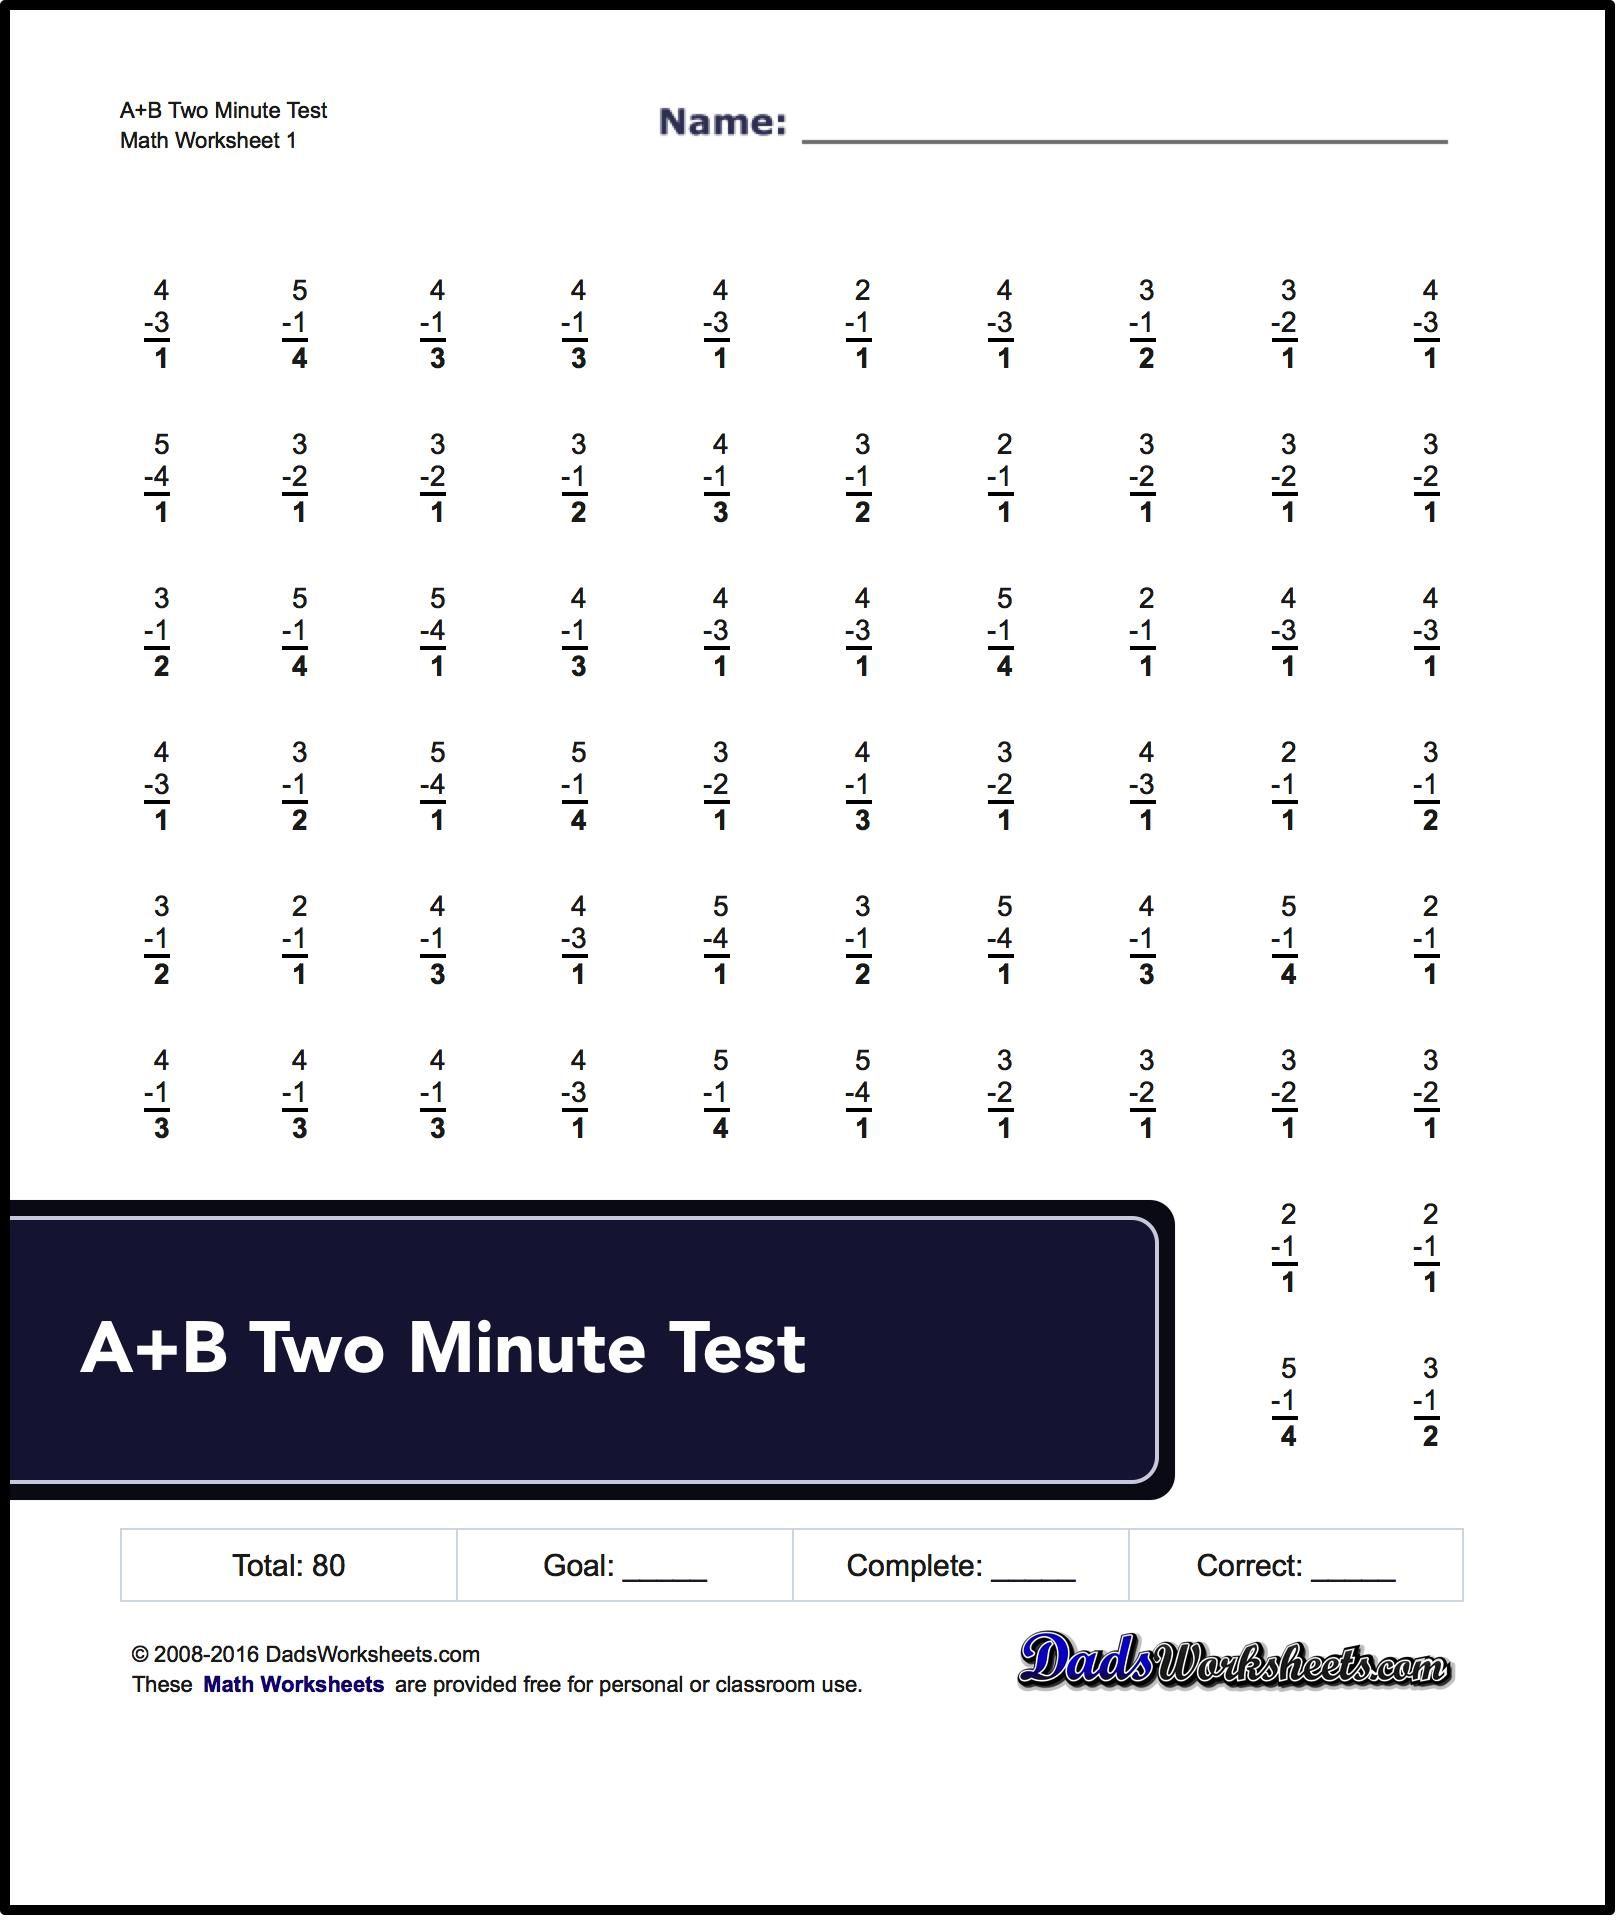 worksheet Division Mad Minute two minute versions of the spaceship math subtraction worksheets 80 and 100 problem mathrocketmathmad timed multiplication worksheets